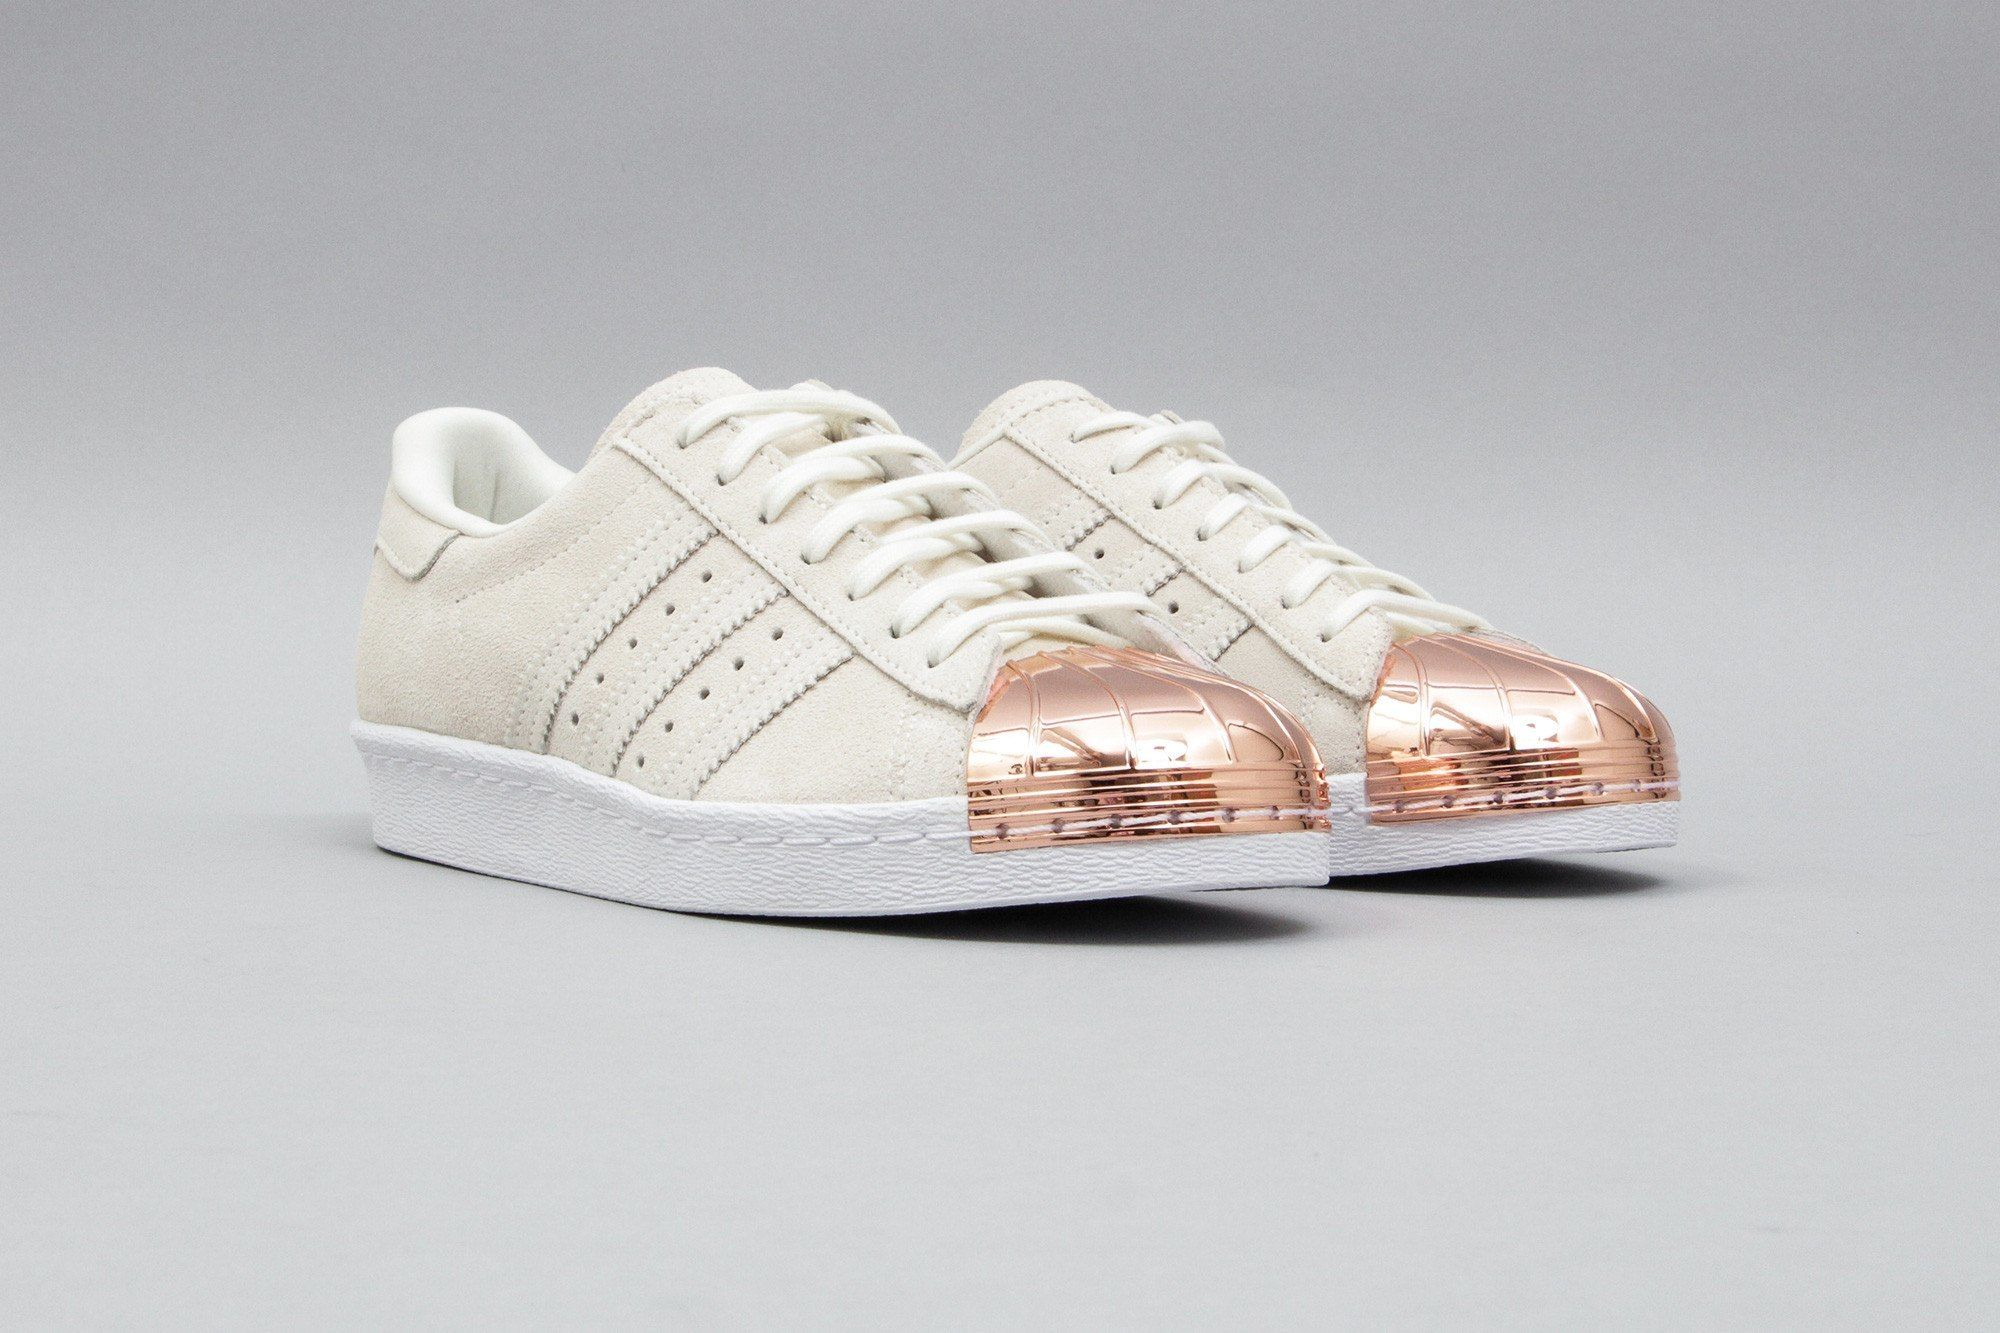 adidas superstar 80s metal toe off white cooper s75057 beige bronze from b v d s t must. Black Bedroom Furniture Sets. Home Design Ideas